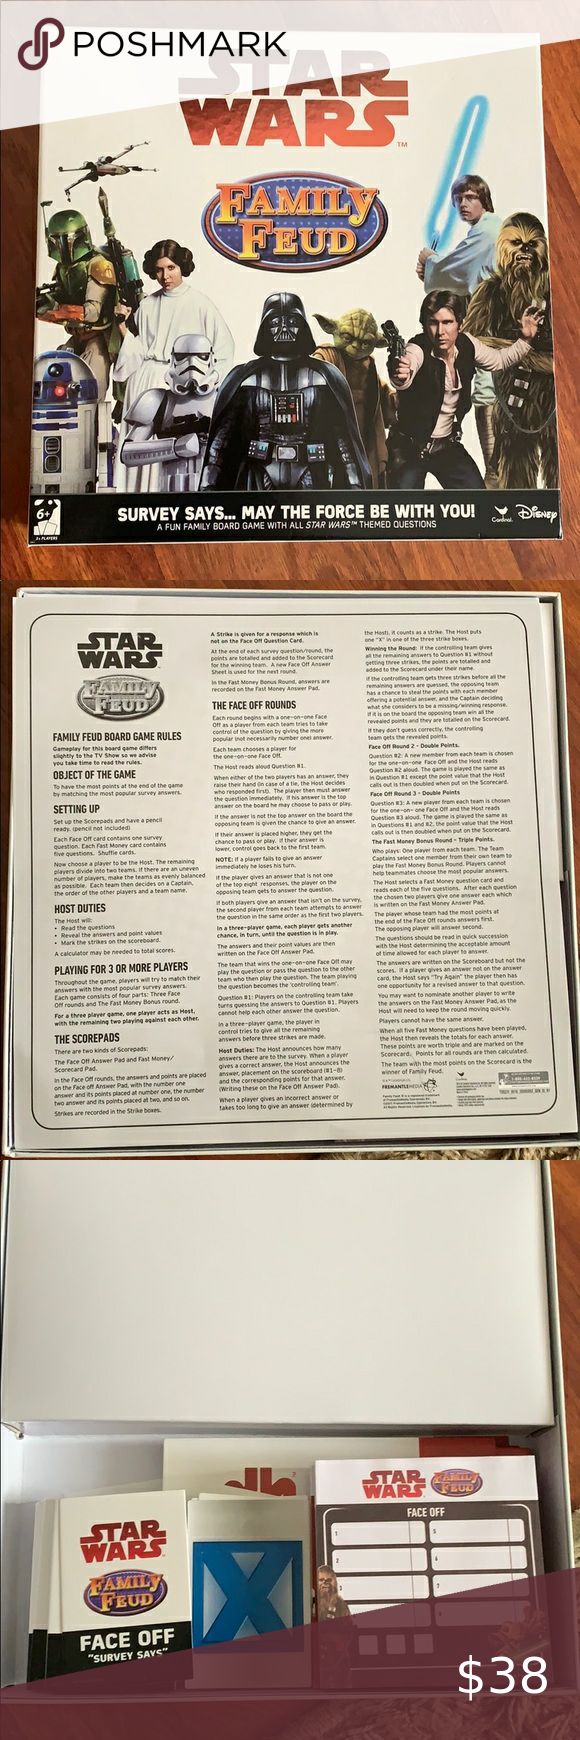 Star Wars family feud game Like new only played once